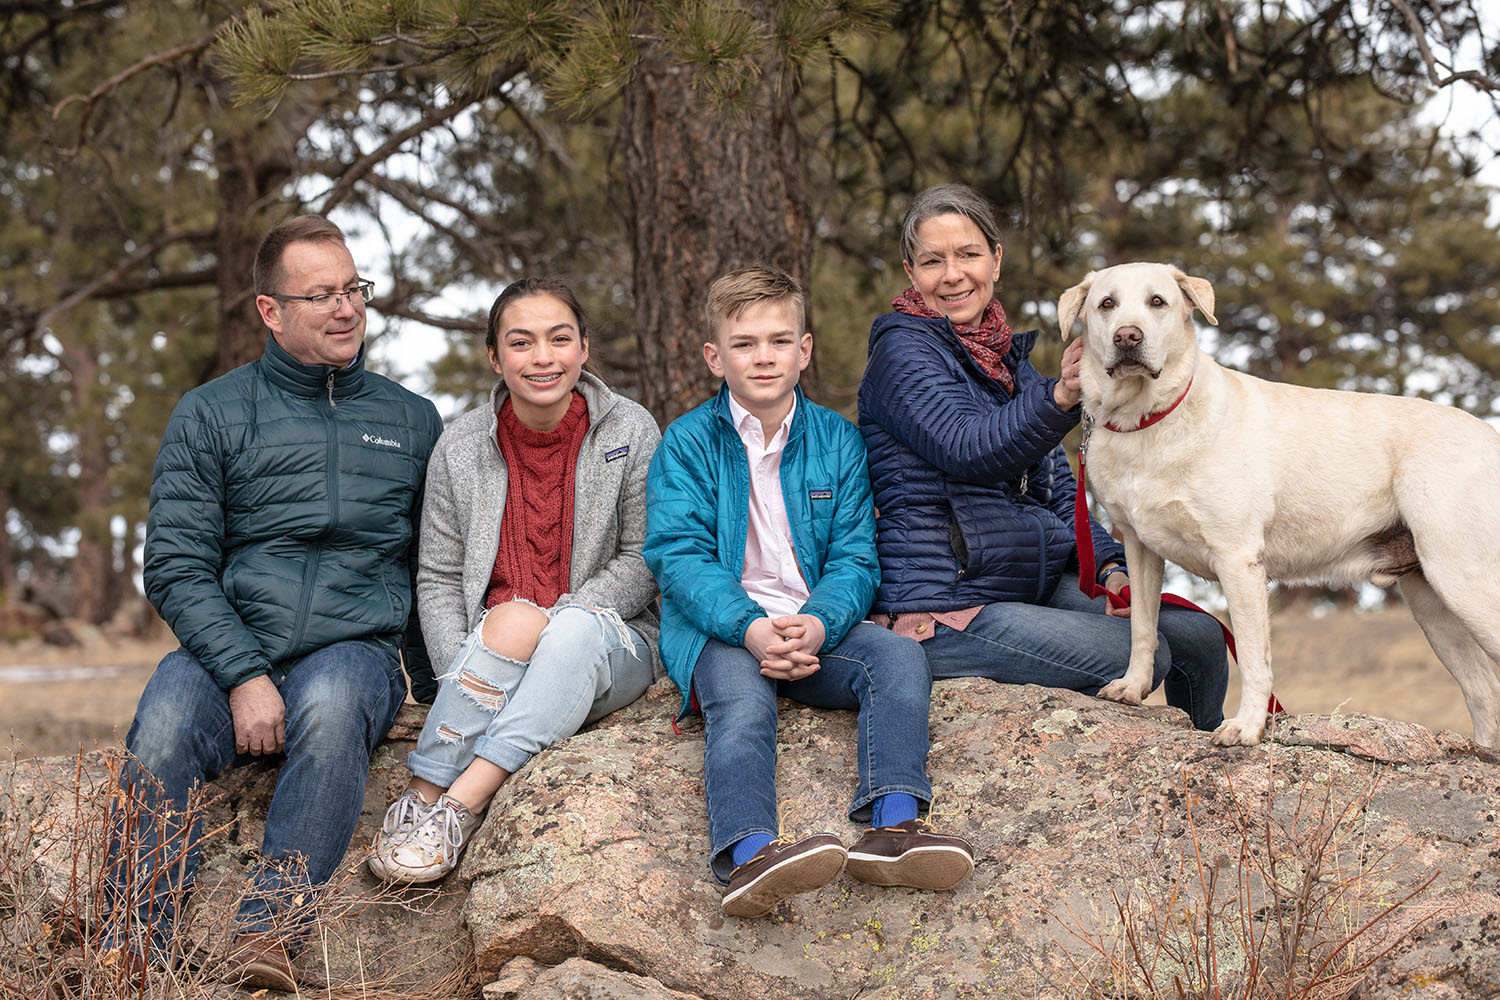 Dog and family portrait in the mountains